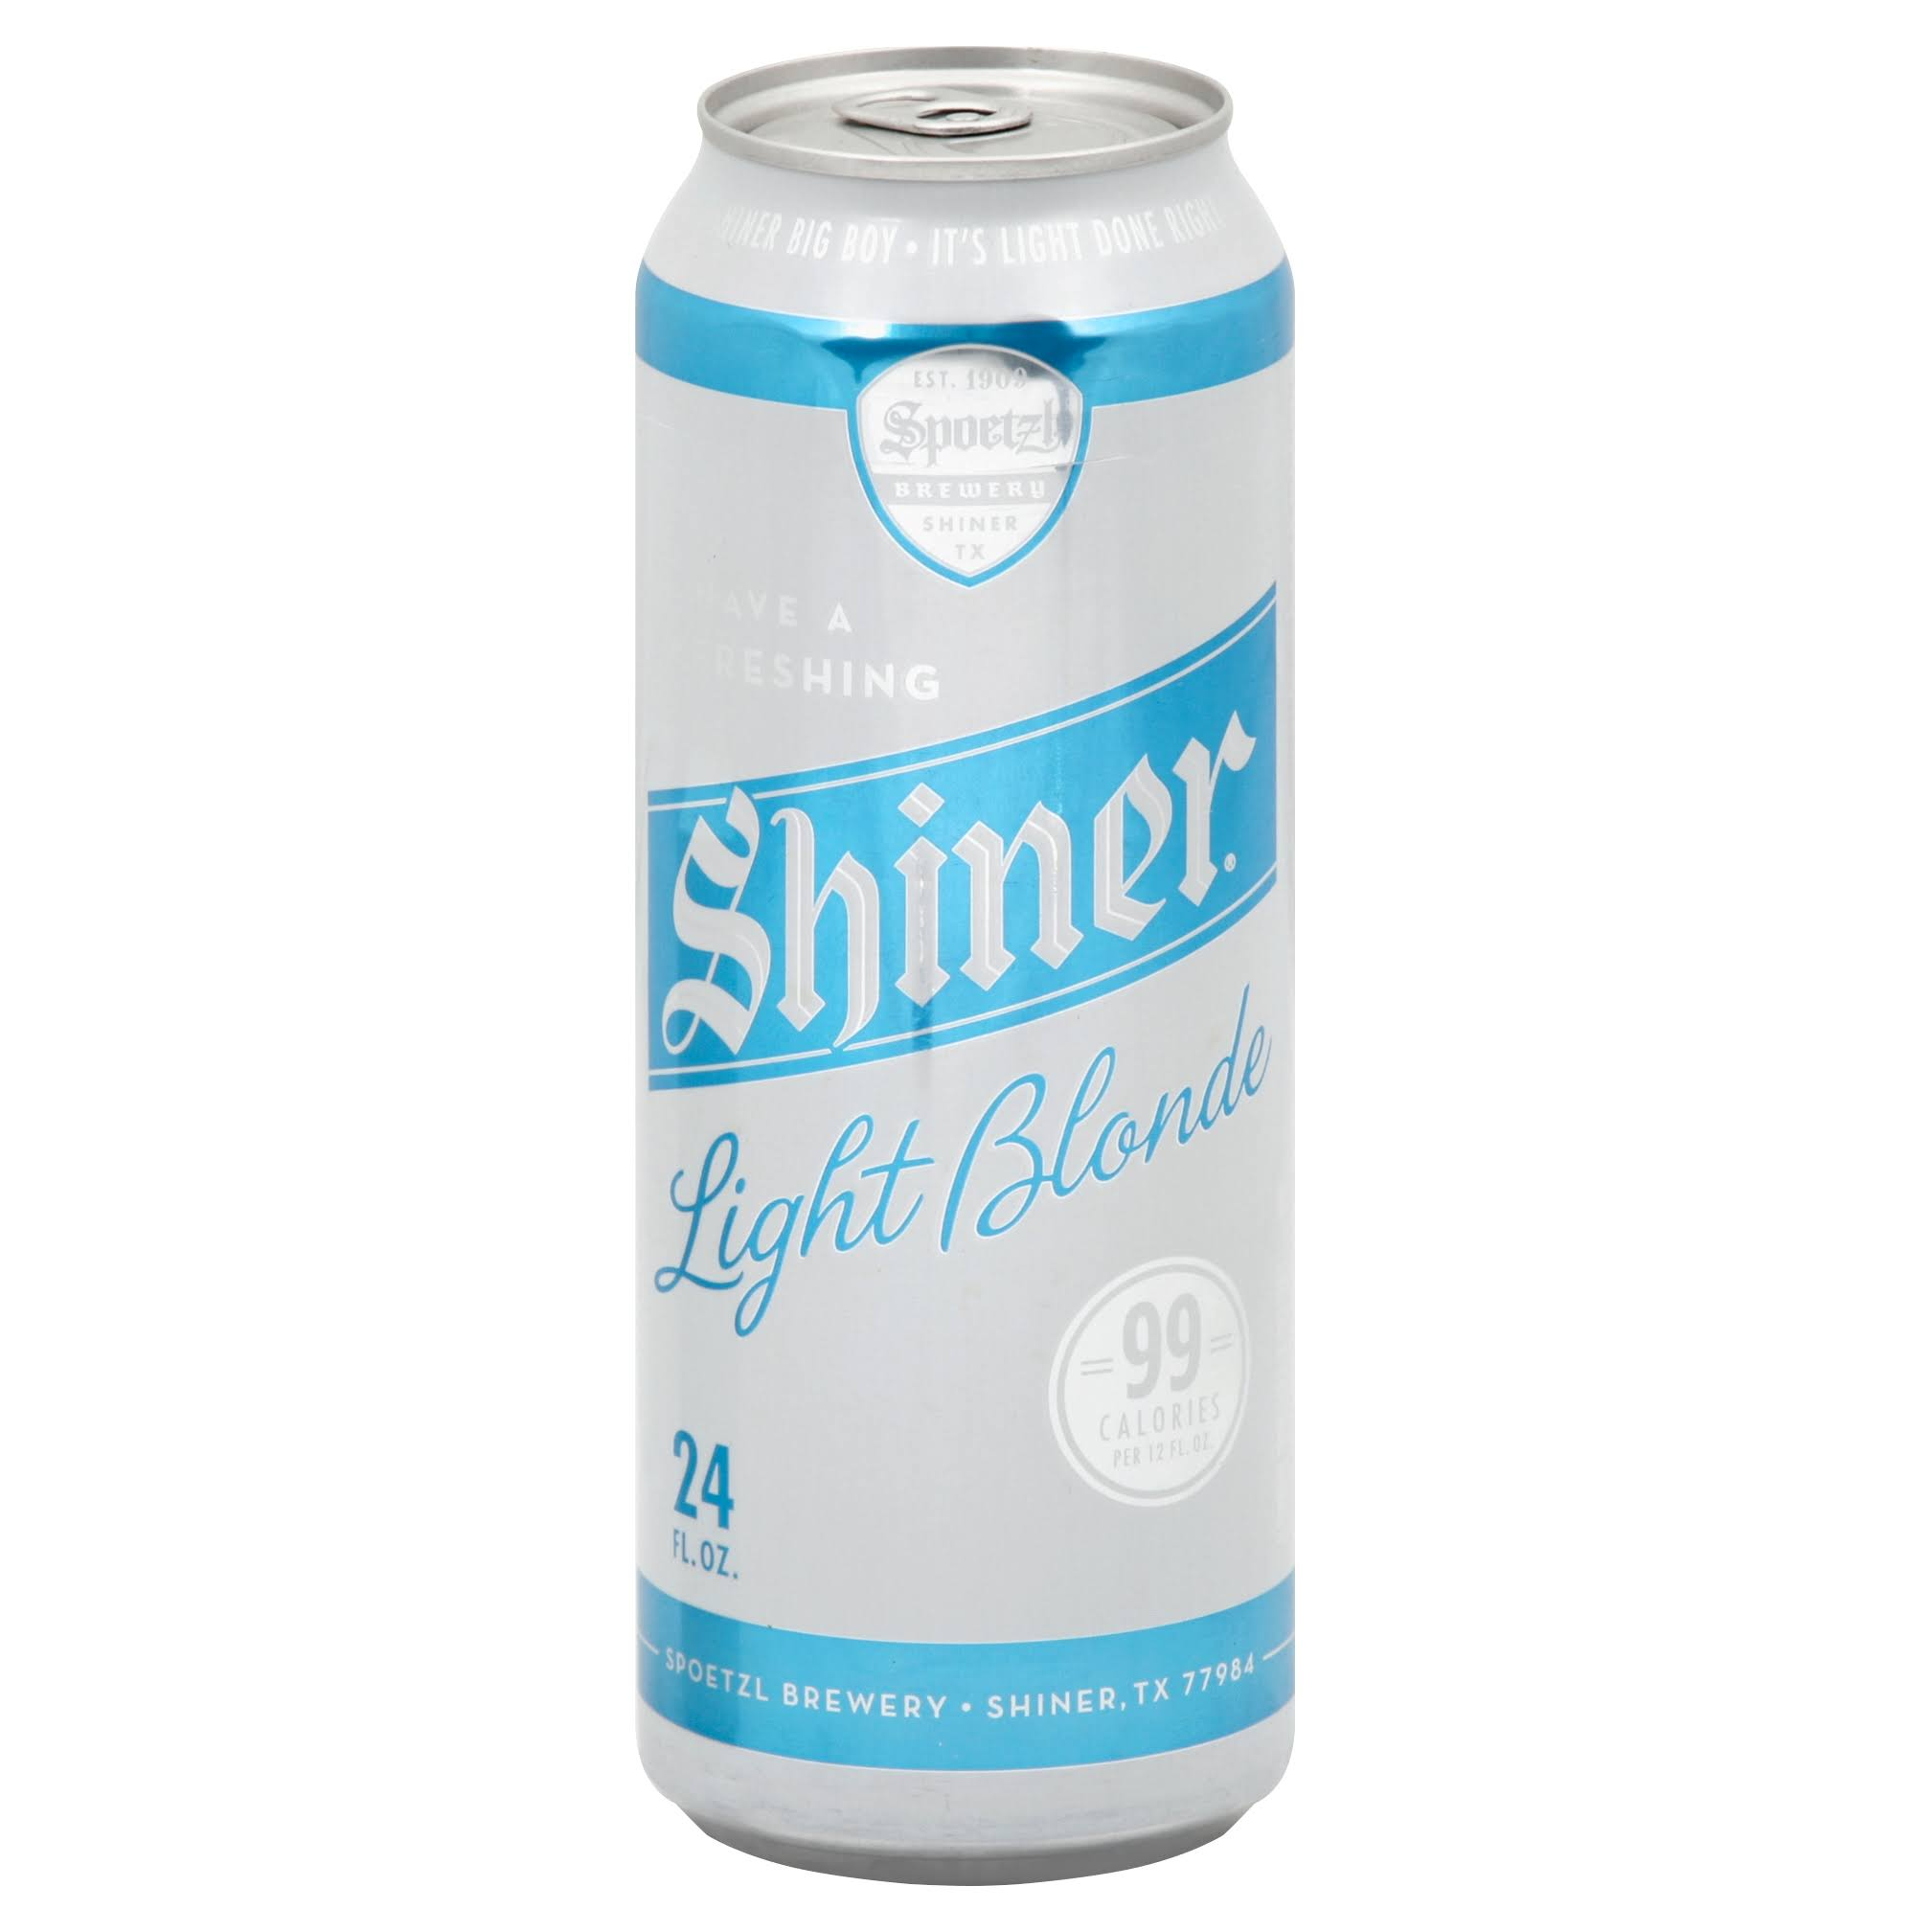 Spoetzl Brewery Beer, Shiner Light Blonde - 24 fl oz